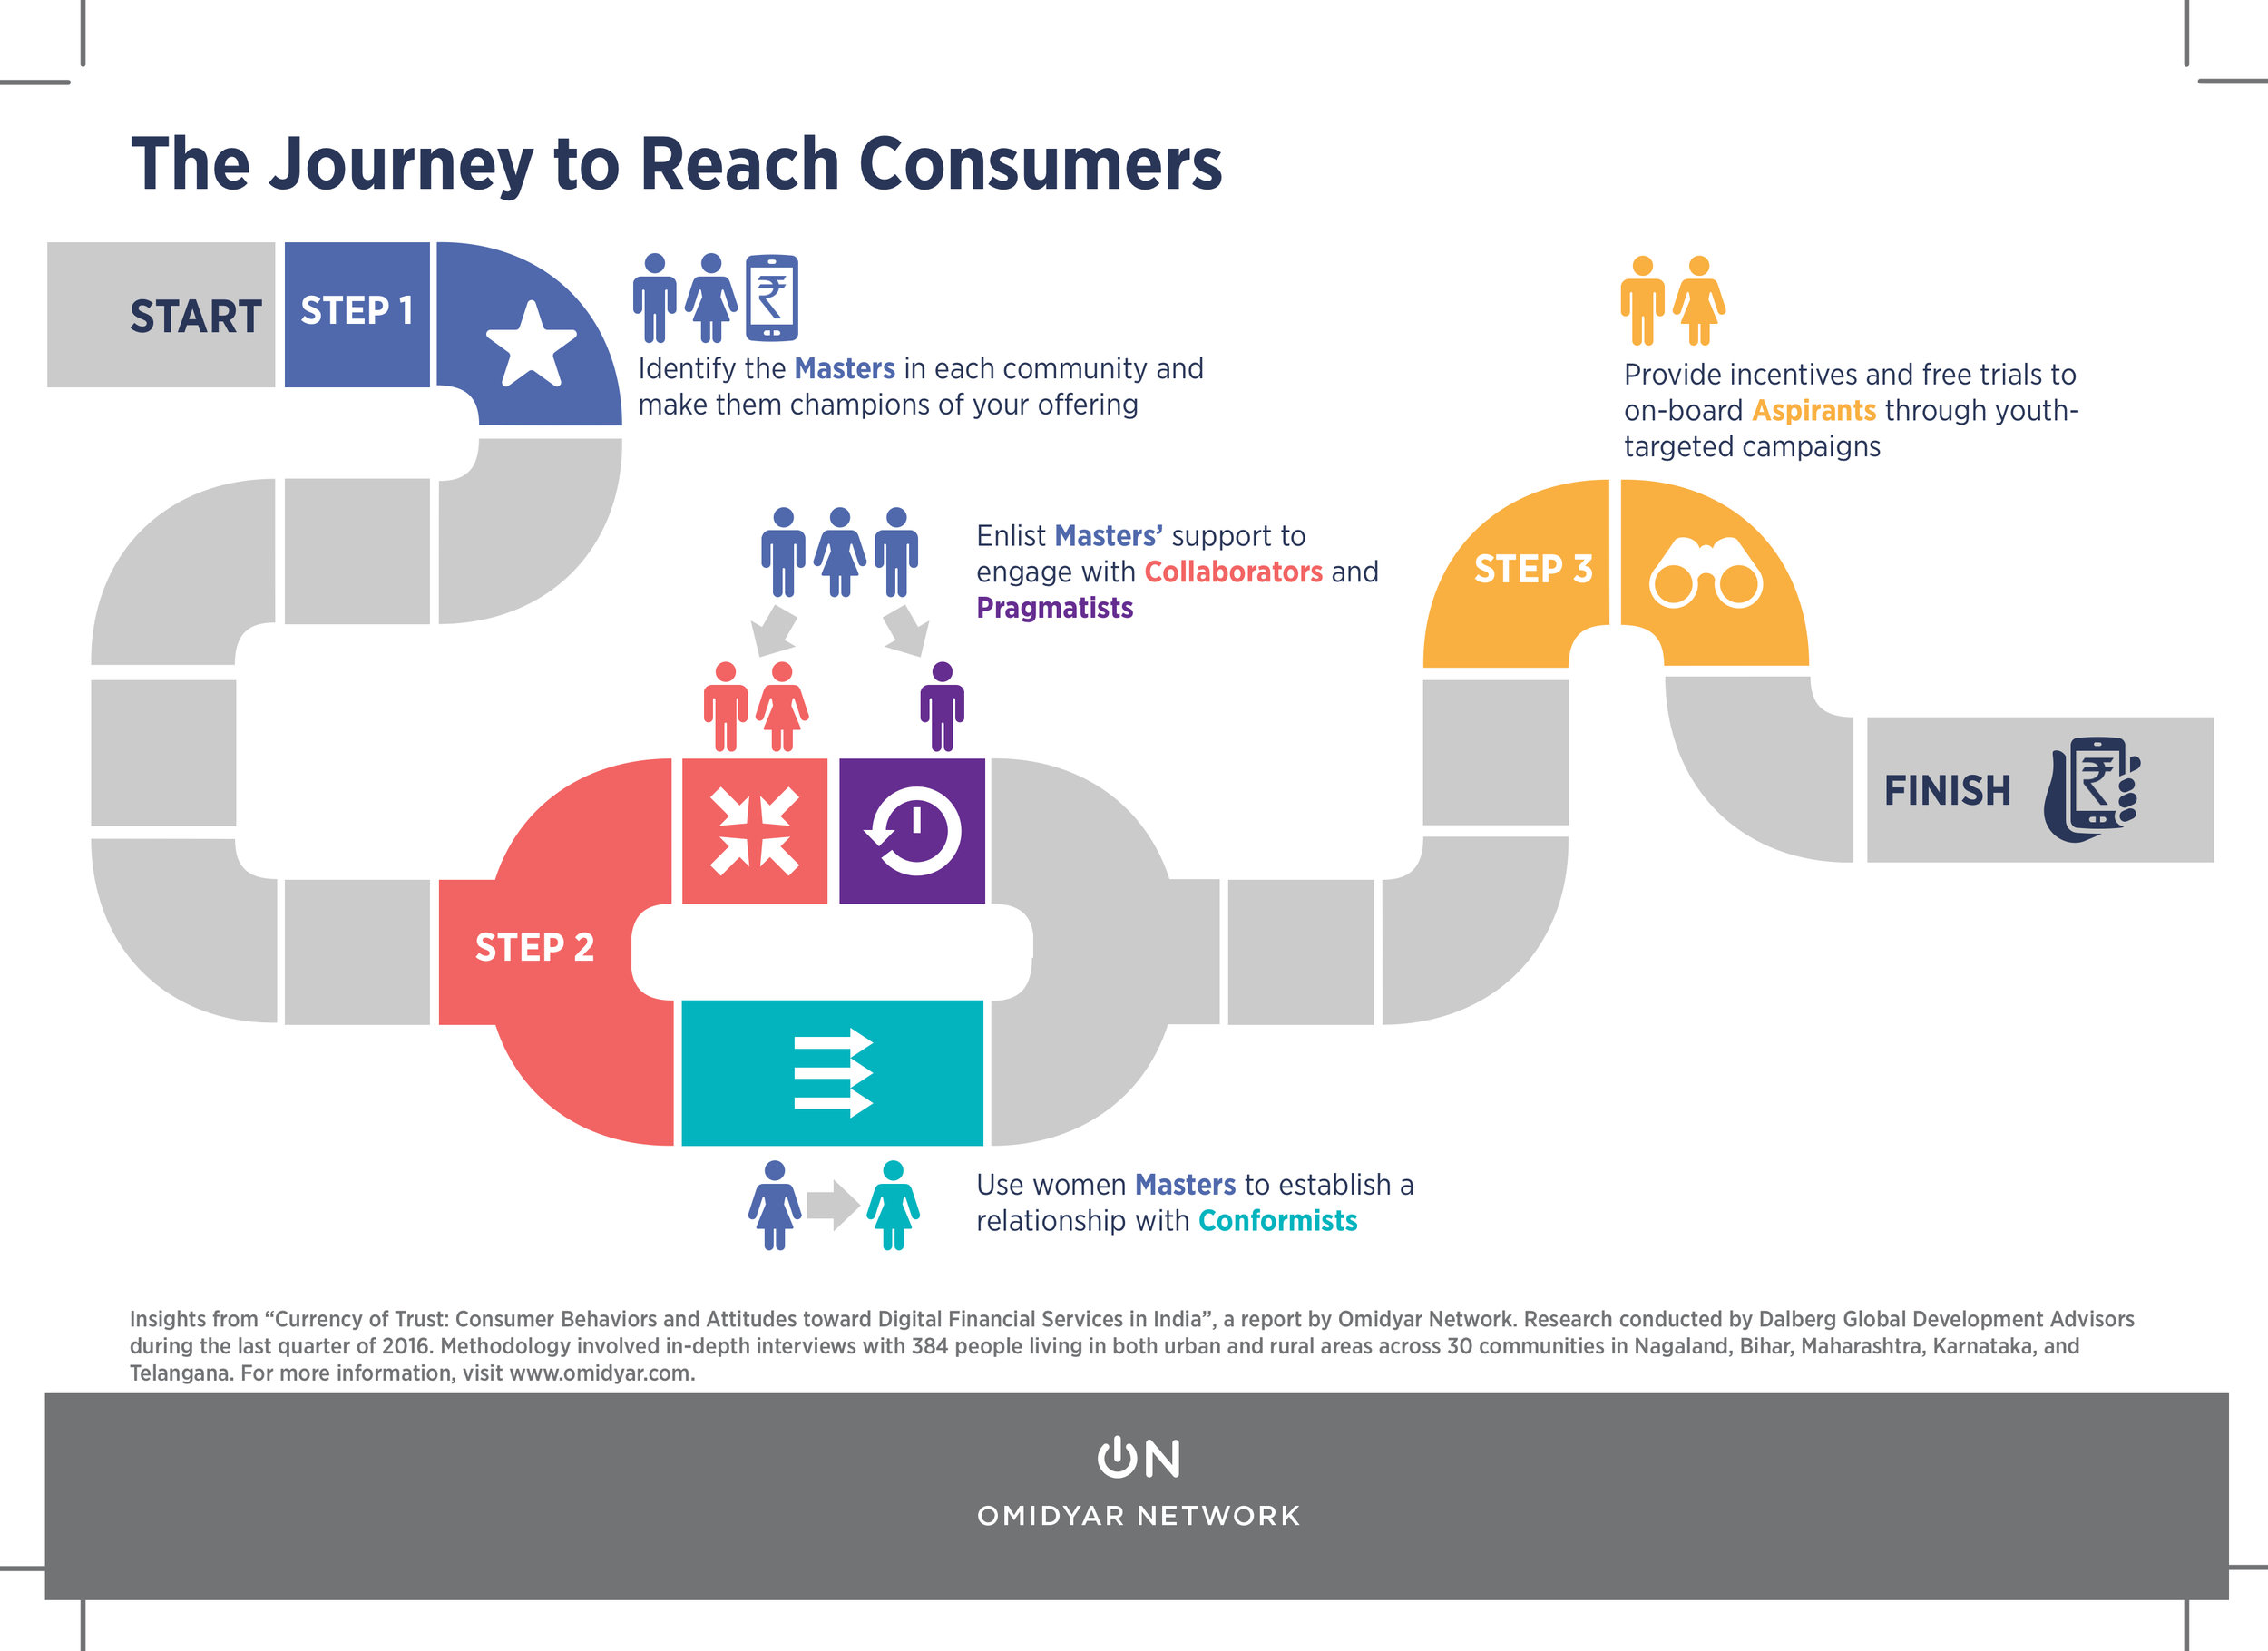 The Journey to Reach Consumers in India